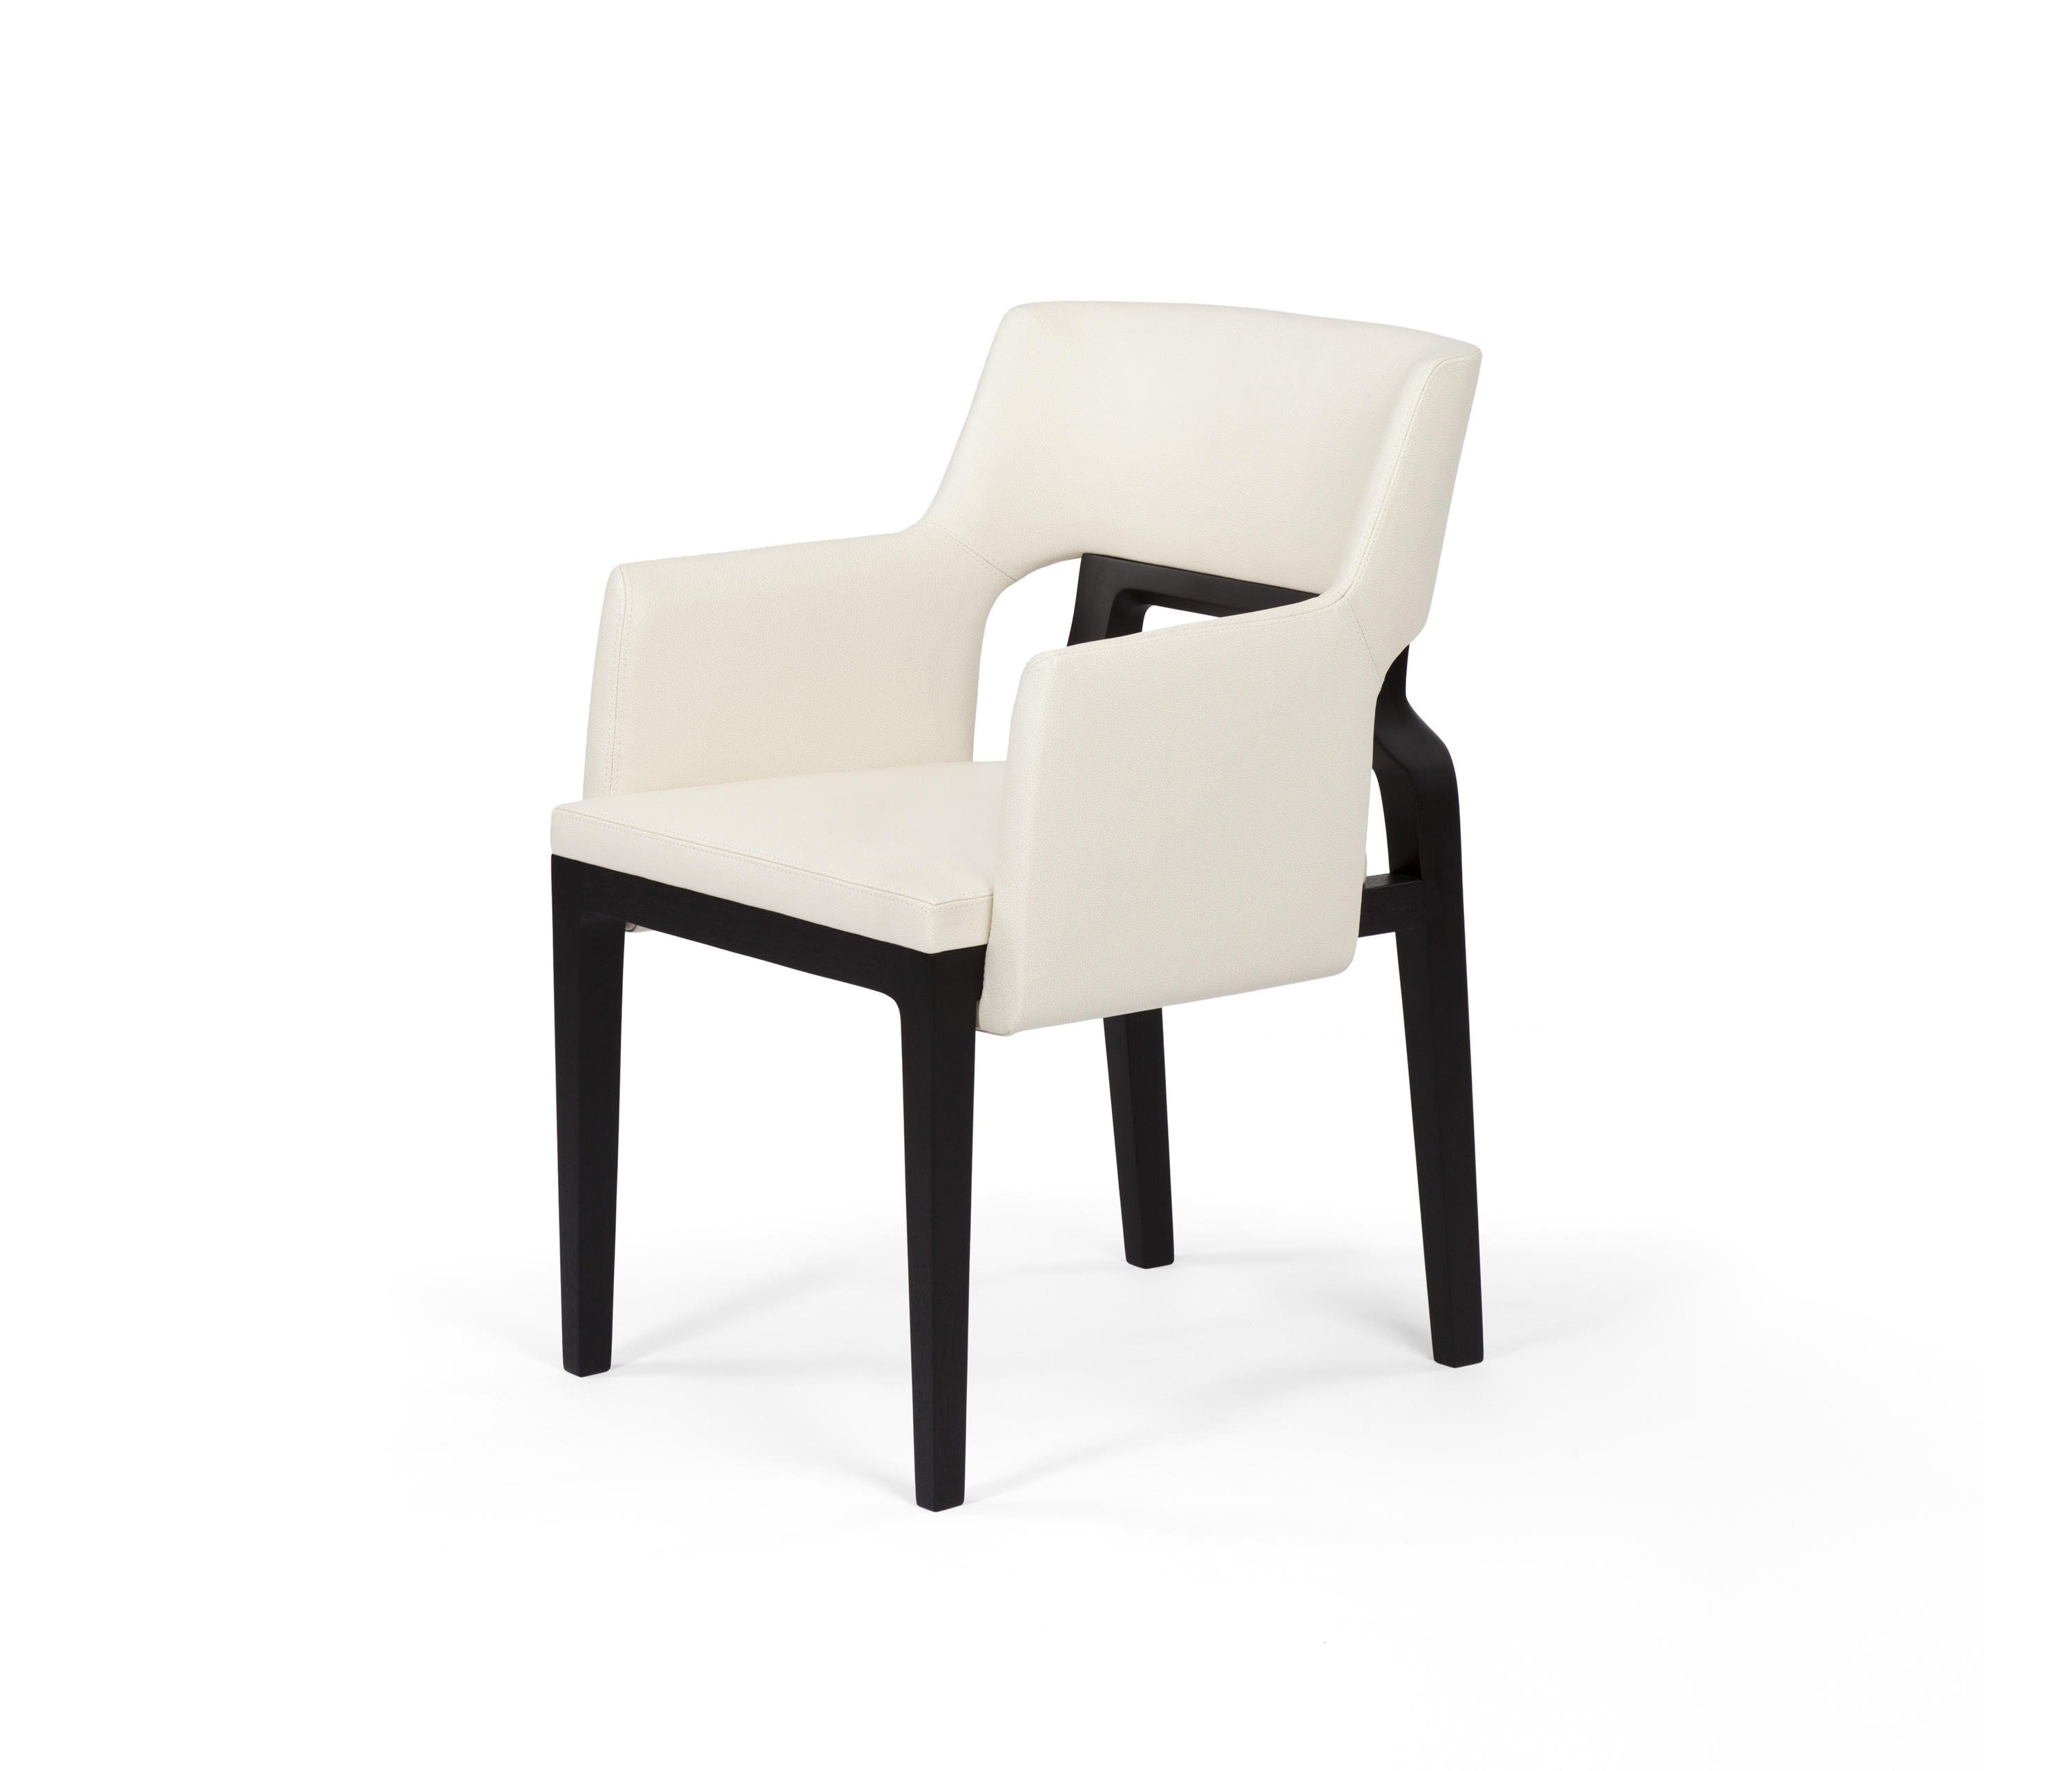 GALLATIN DINING ARM CHAIR Restaurant chairs from CASTE